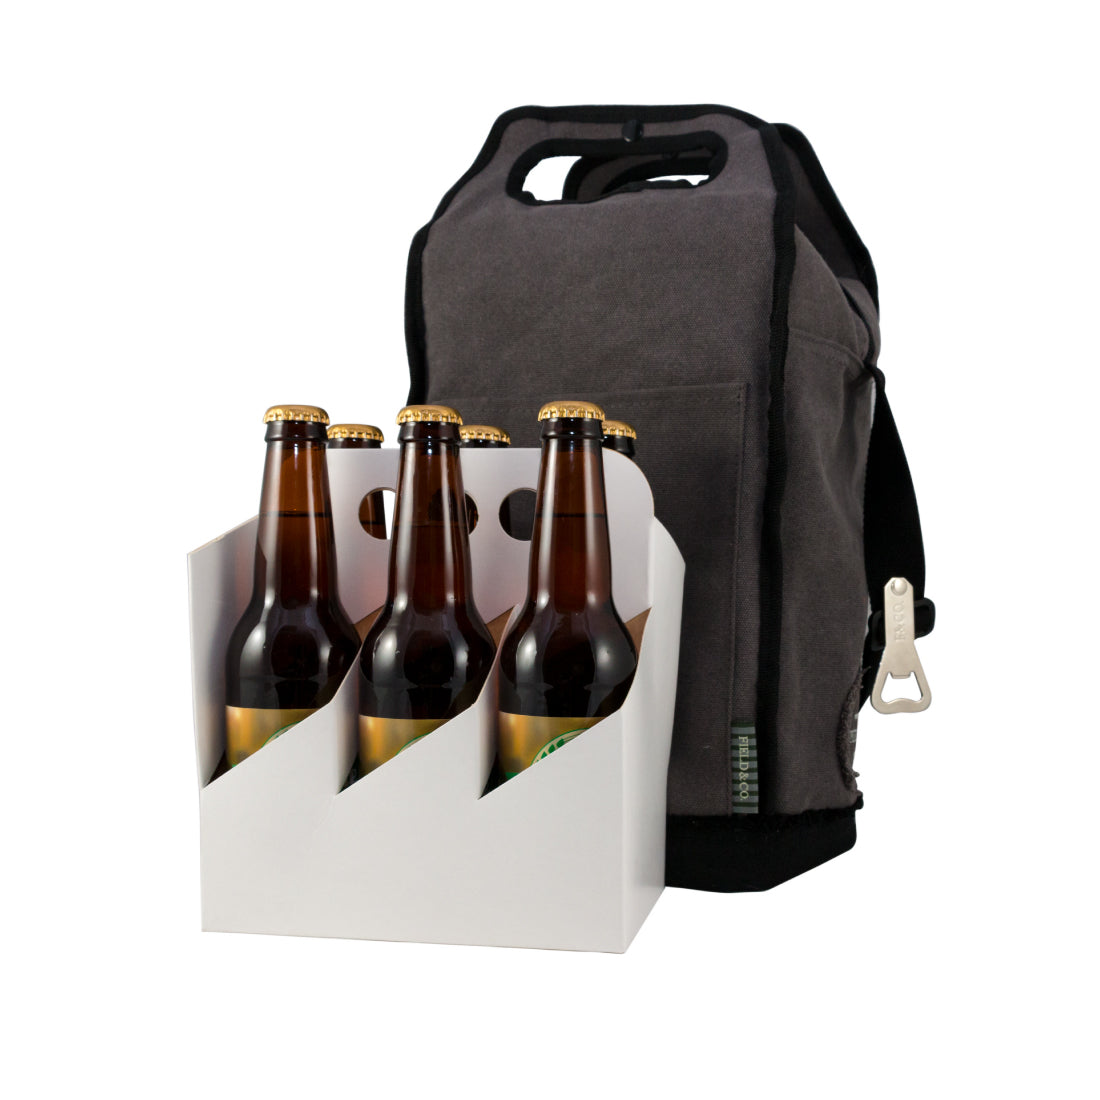 Craft Lager 4.6% - 6 pack & Cooler Bag